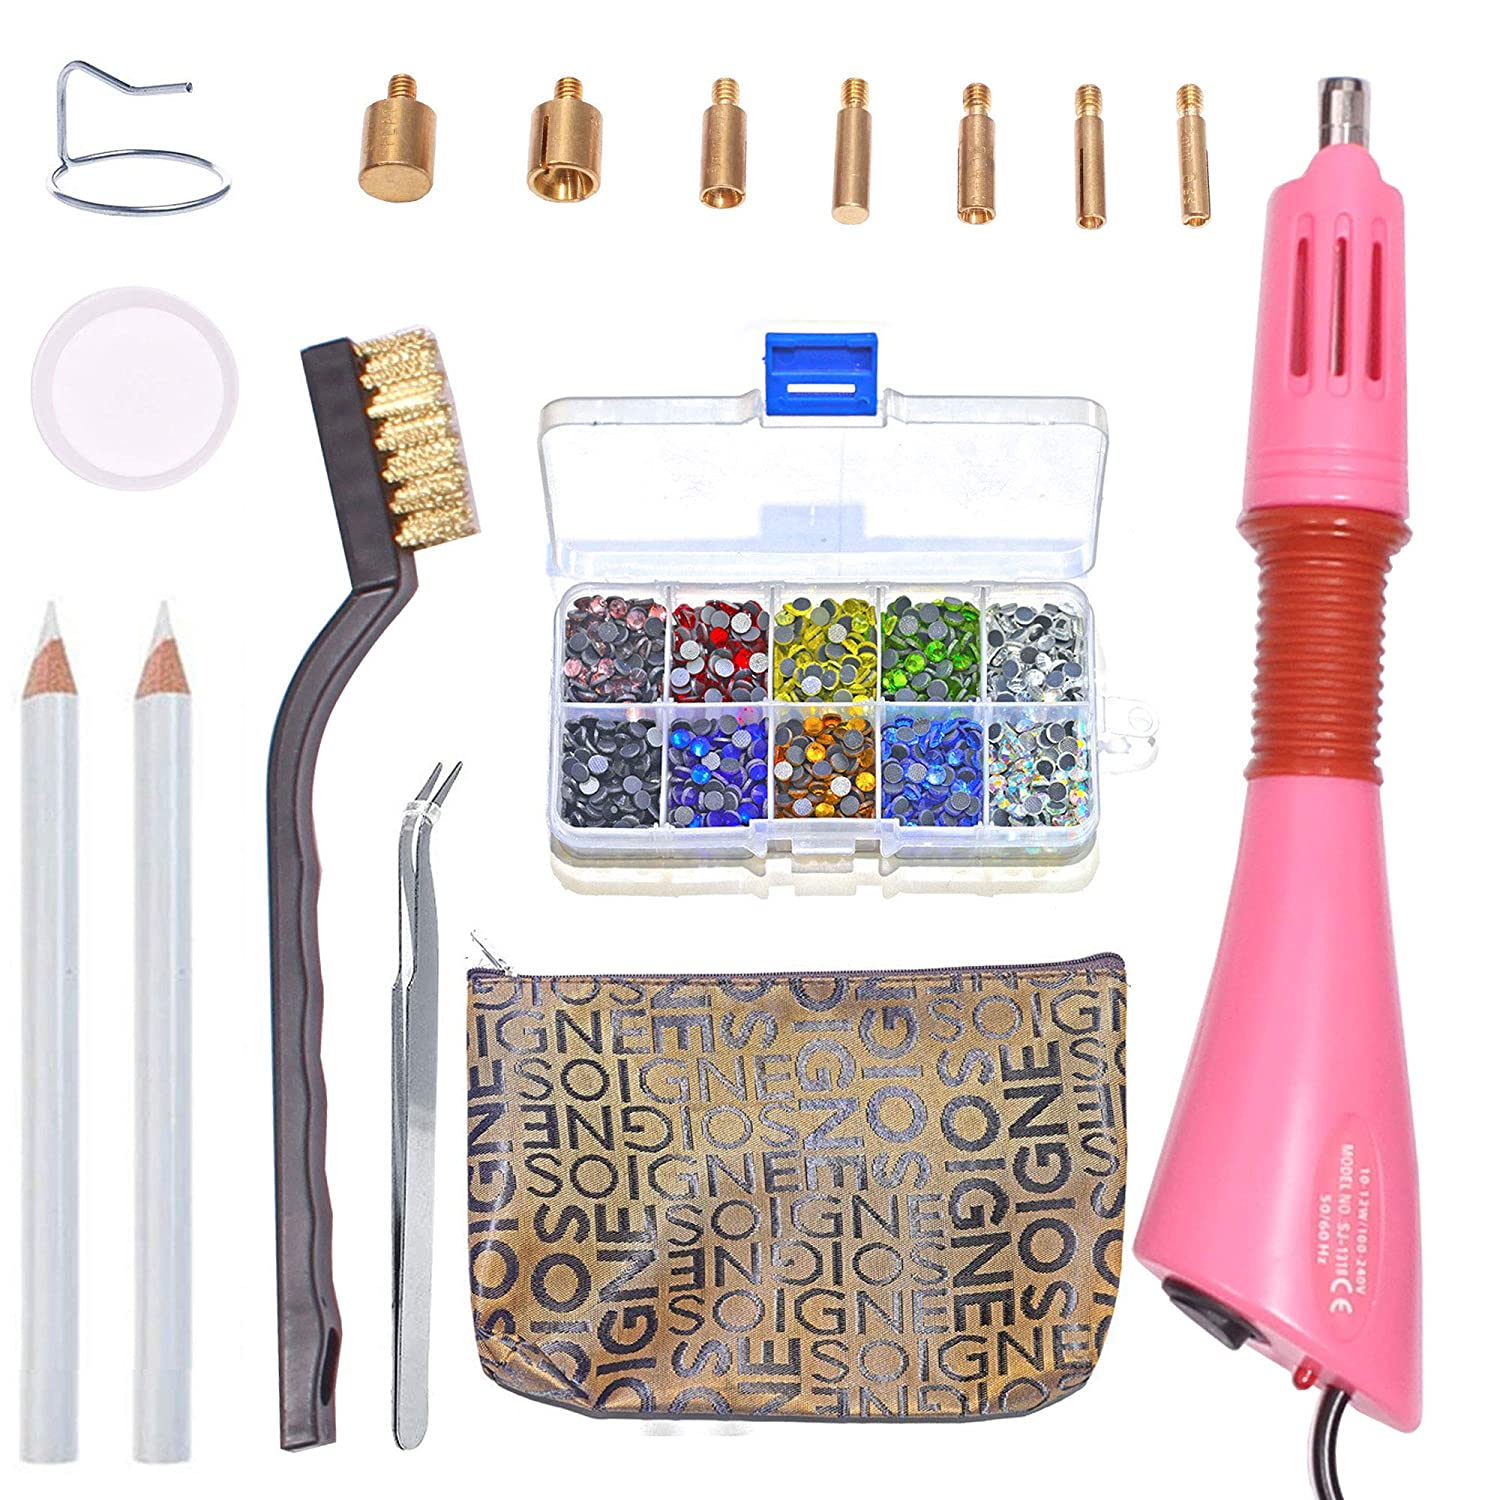 Rhinestone Hotfix Applicator DIY Hot-Fix Applicator Crystal Wand Setter Tool Kit with 7 Different Sizes Tips,Tweezers /& Brush Cleaning kit and 1 Box Hot-Fix Crystal Rhinestones